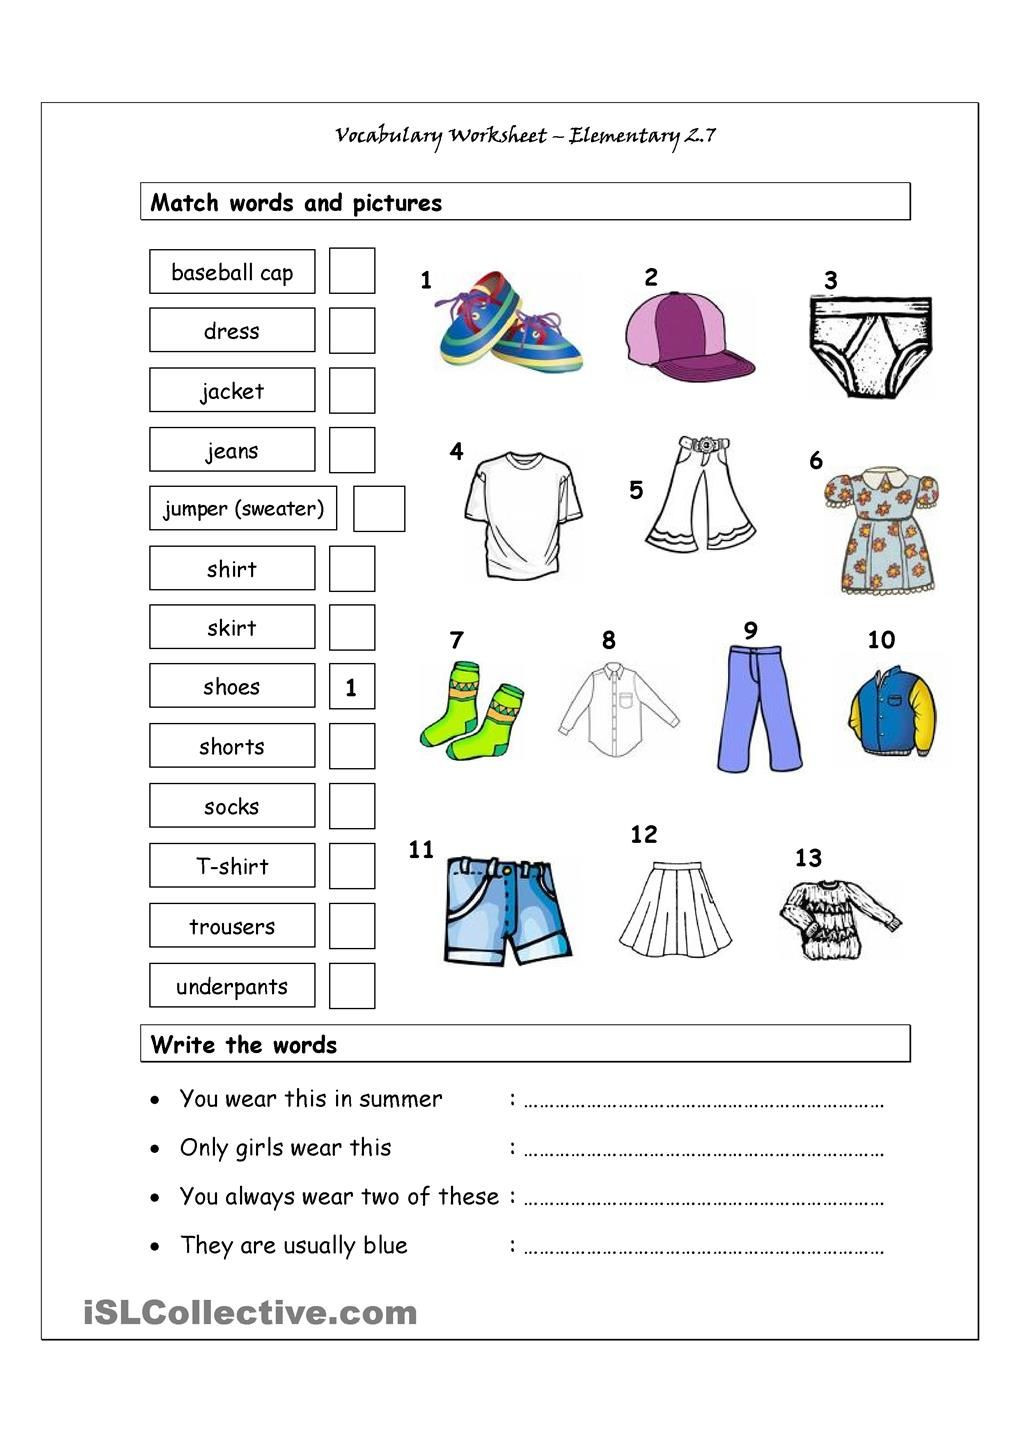 Vocabulary Worksheets for 1st Graders Vocabulary Matching Worksheet Elementary 2 7 Clothes